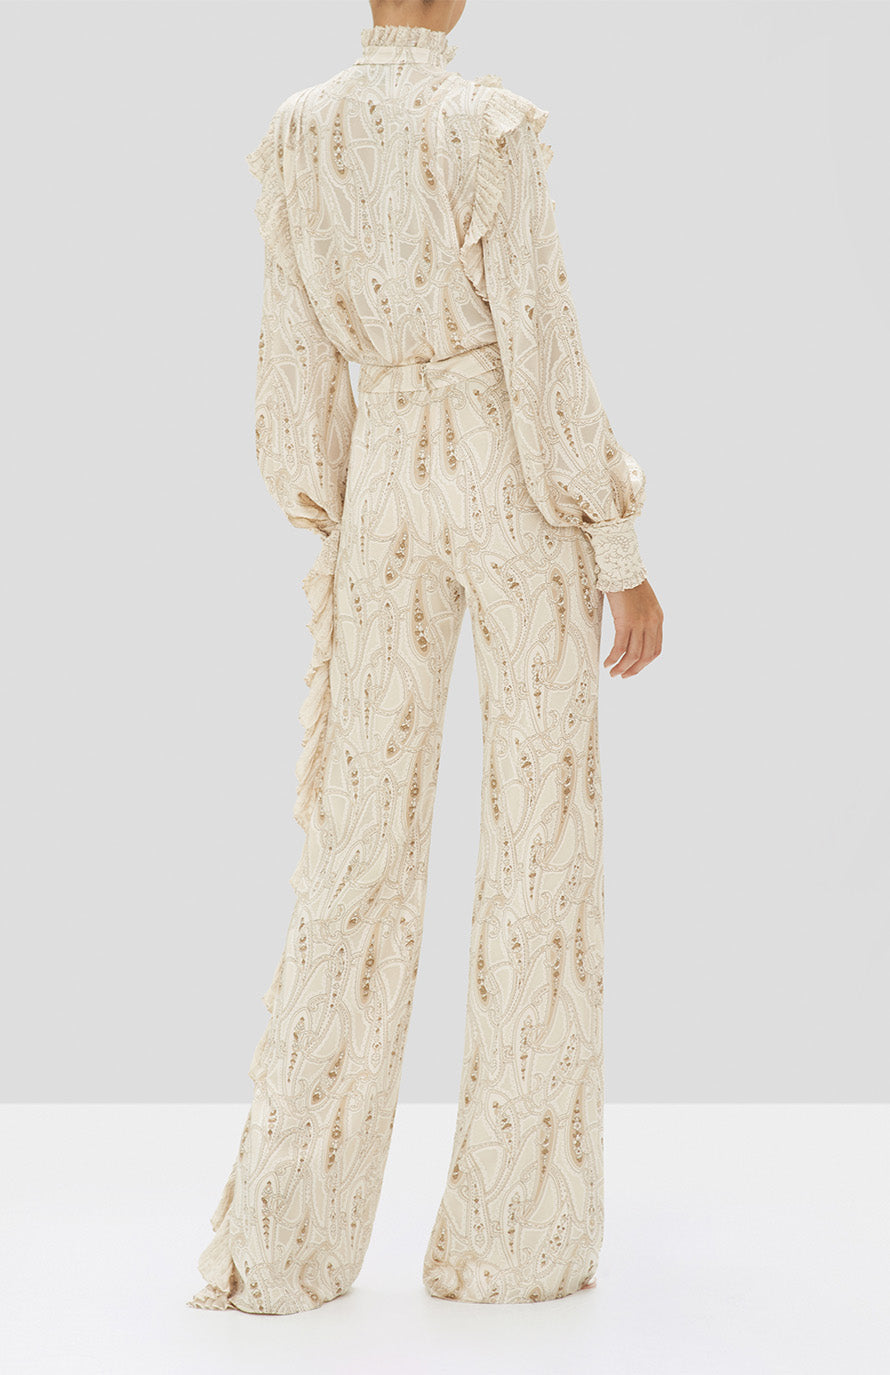 Alexis Eline Top in Cream Paisley from the Holiday 2019 Ready To Wear Collection - Rear View